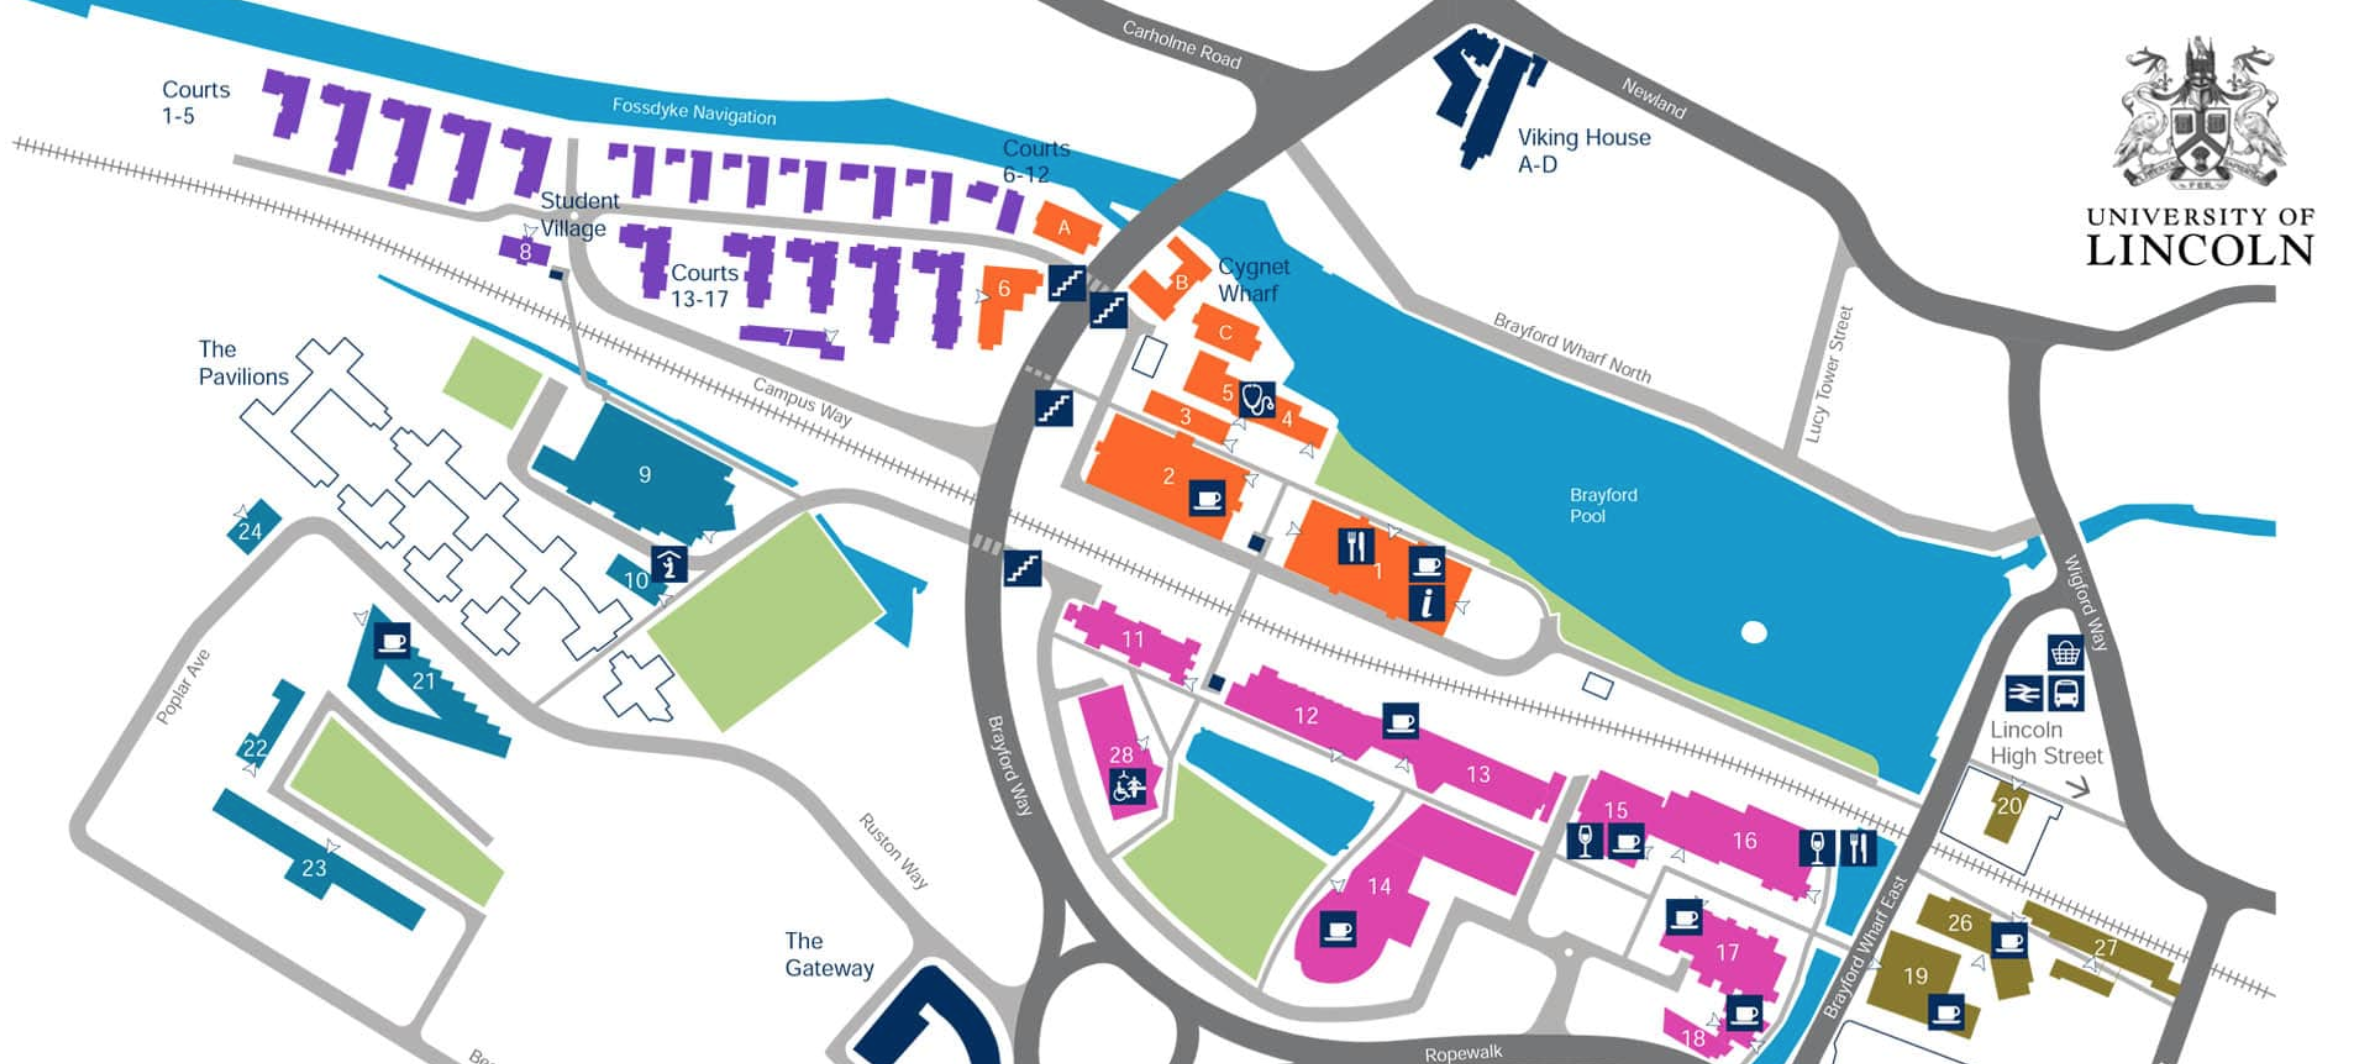 University of Lincoln campus map